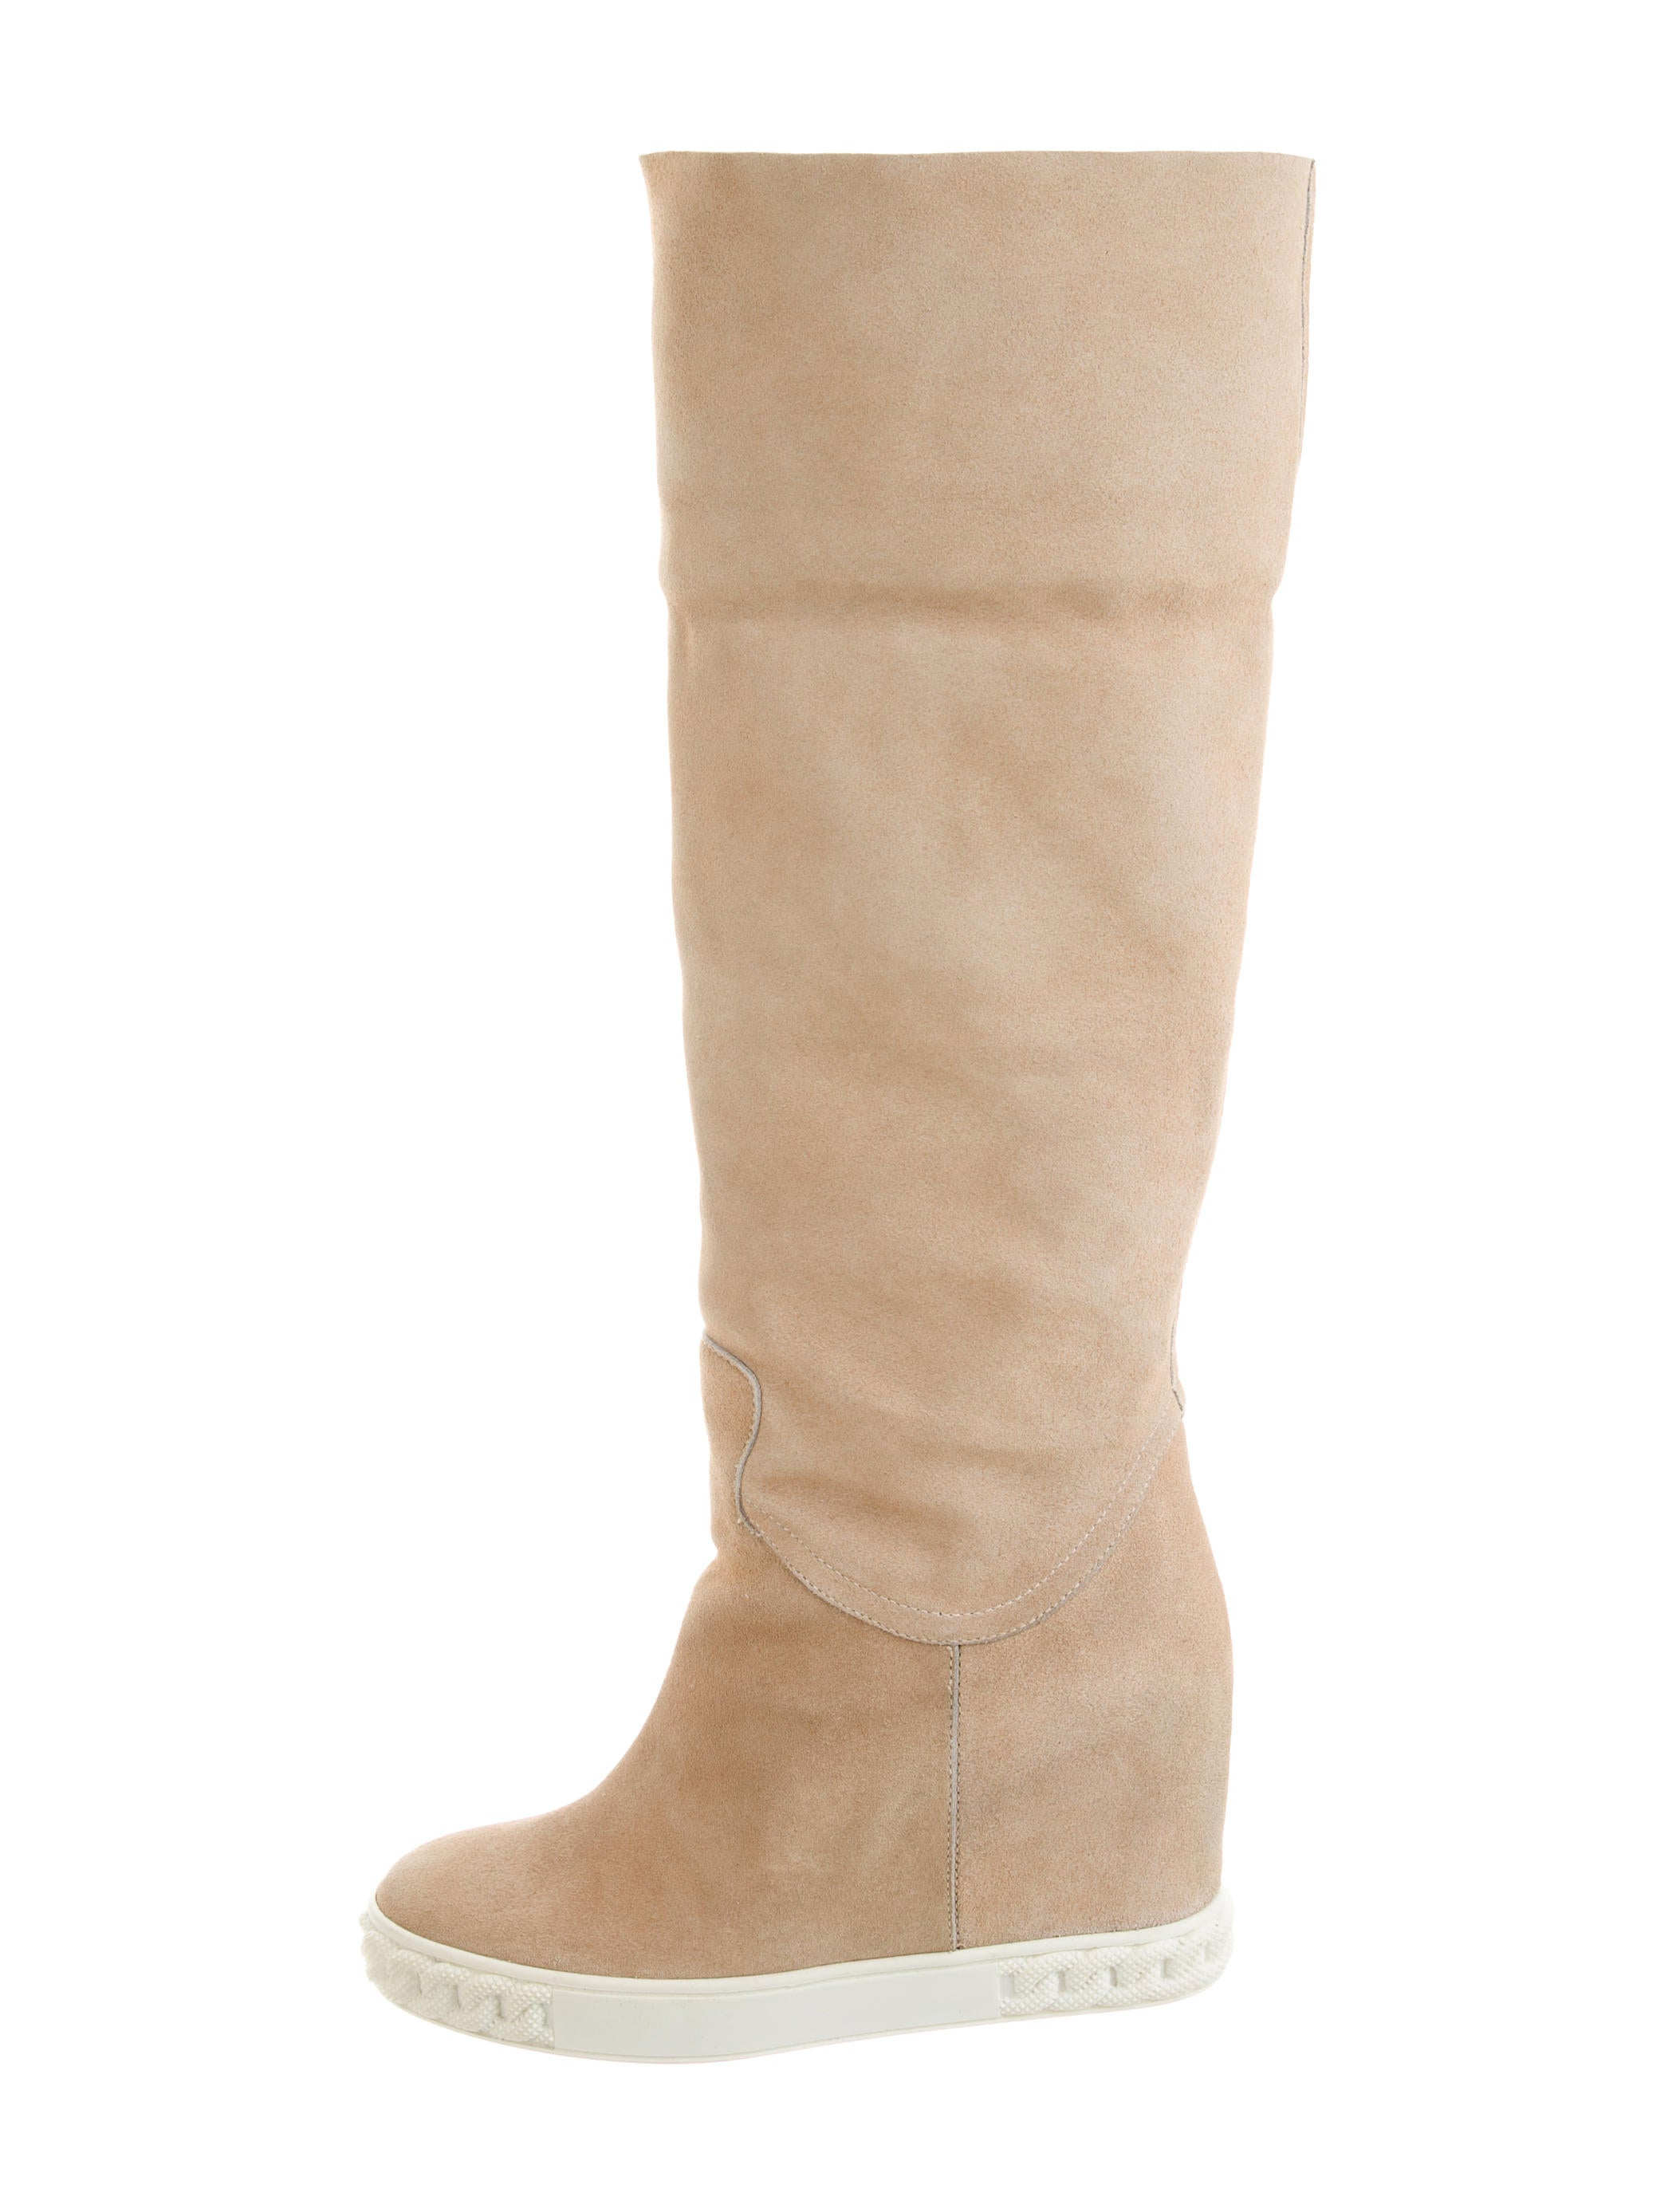 casadei suede wedge boots shoes cei22762 the realreal